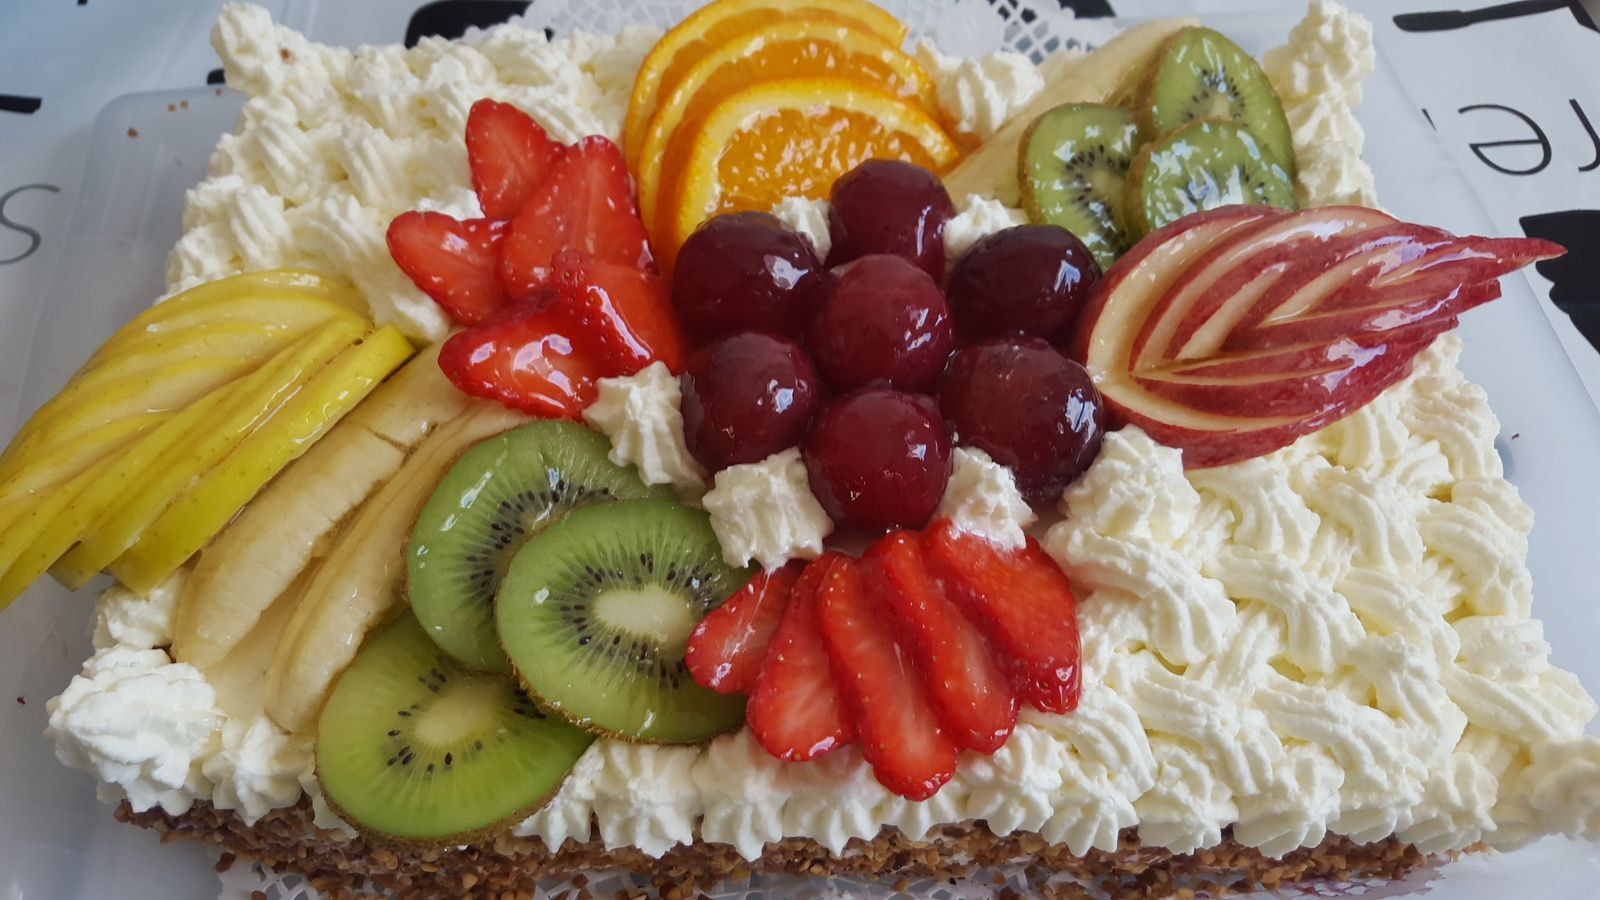 Creme Chantilly Decoration Gateau Gateau Au Fruit Chantilly Les Recettes Populaires Blogue